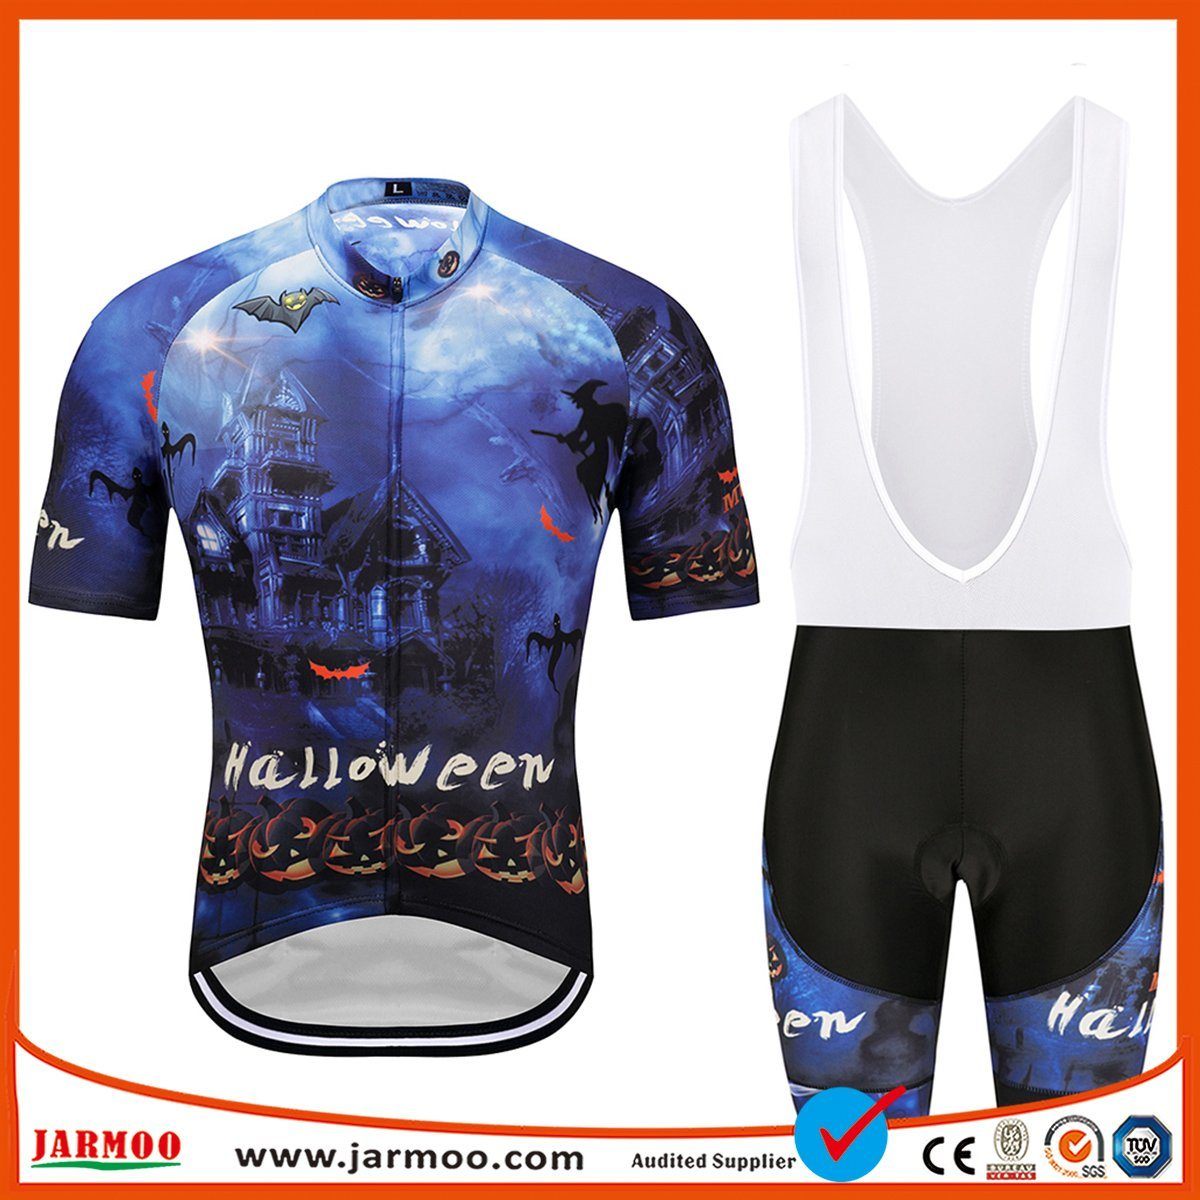 China Custom Sublimation Printing Cycling Jerseys - China Sports Jerseys 6dda2f10e